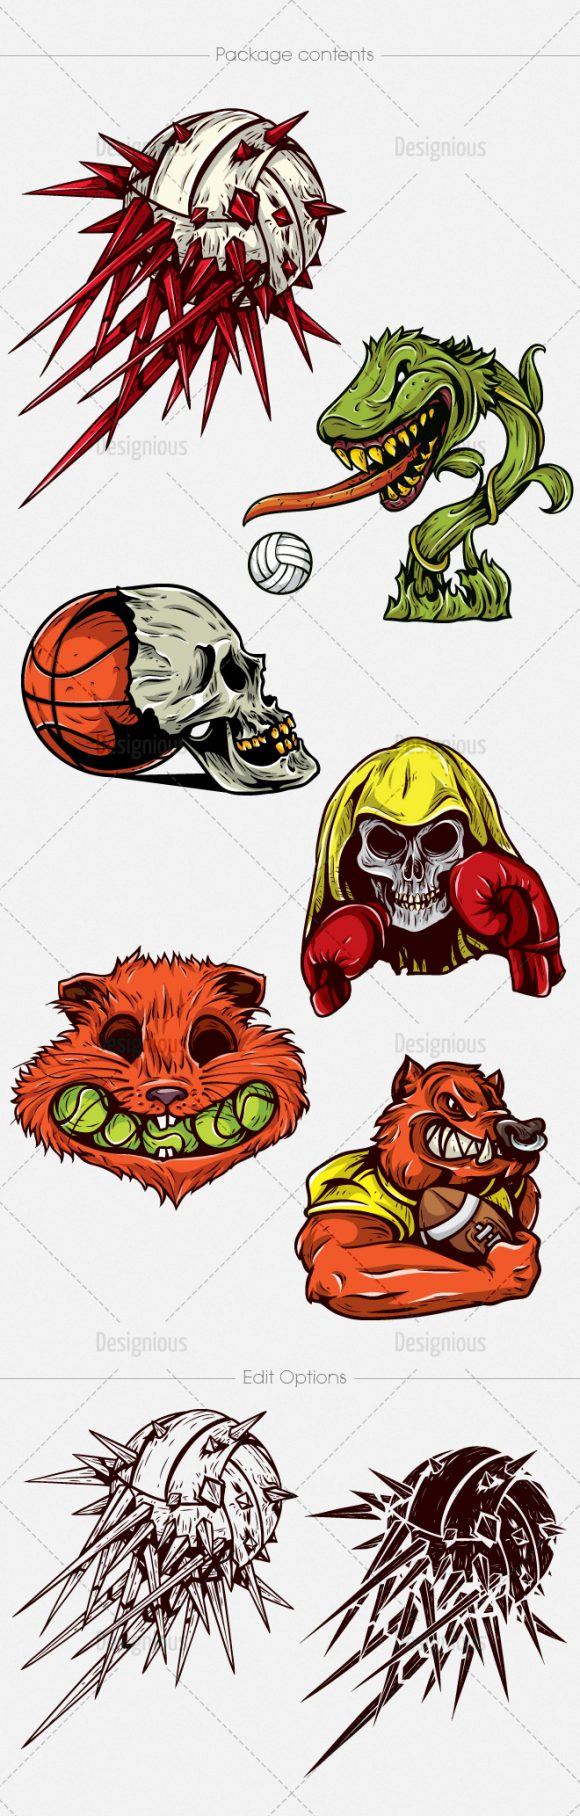 Sport Concepts Vector Pack 10 6